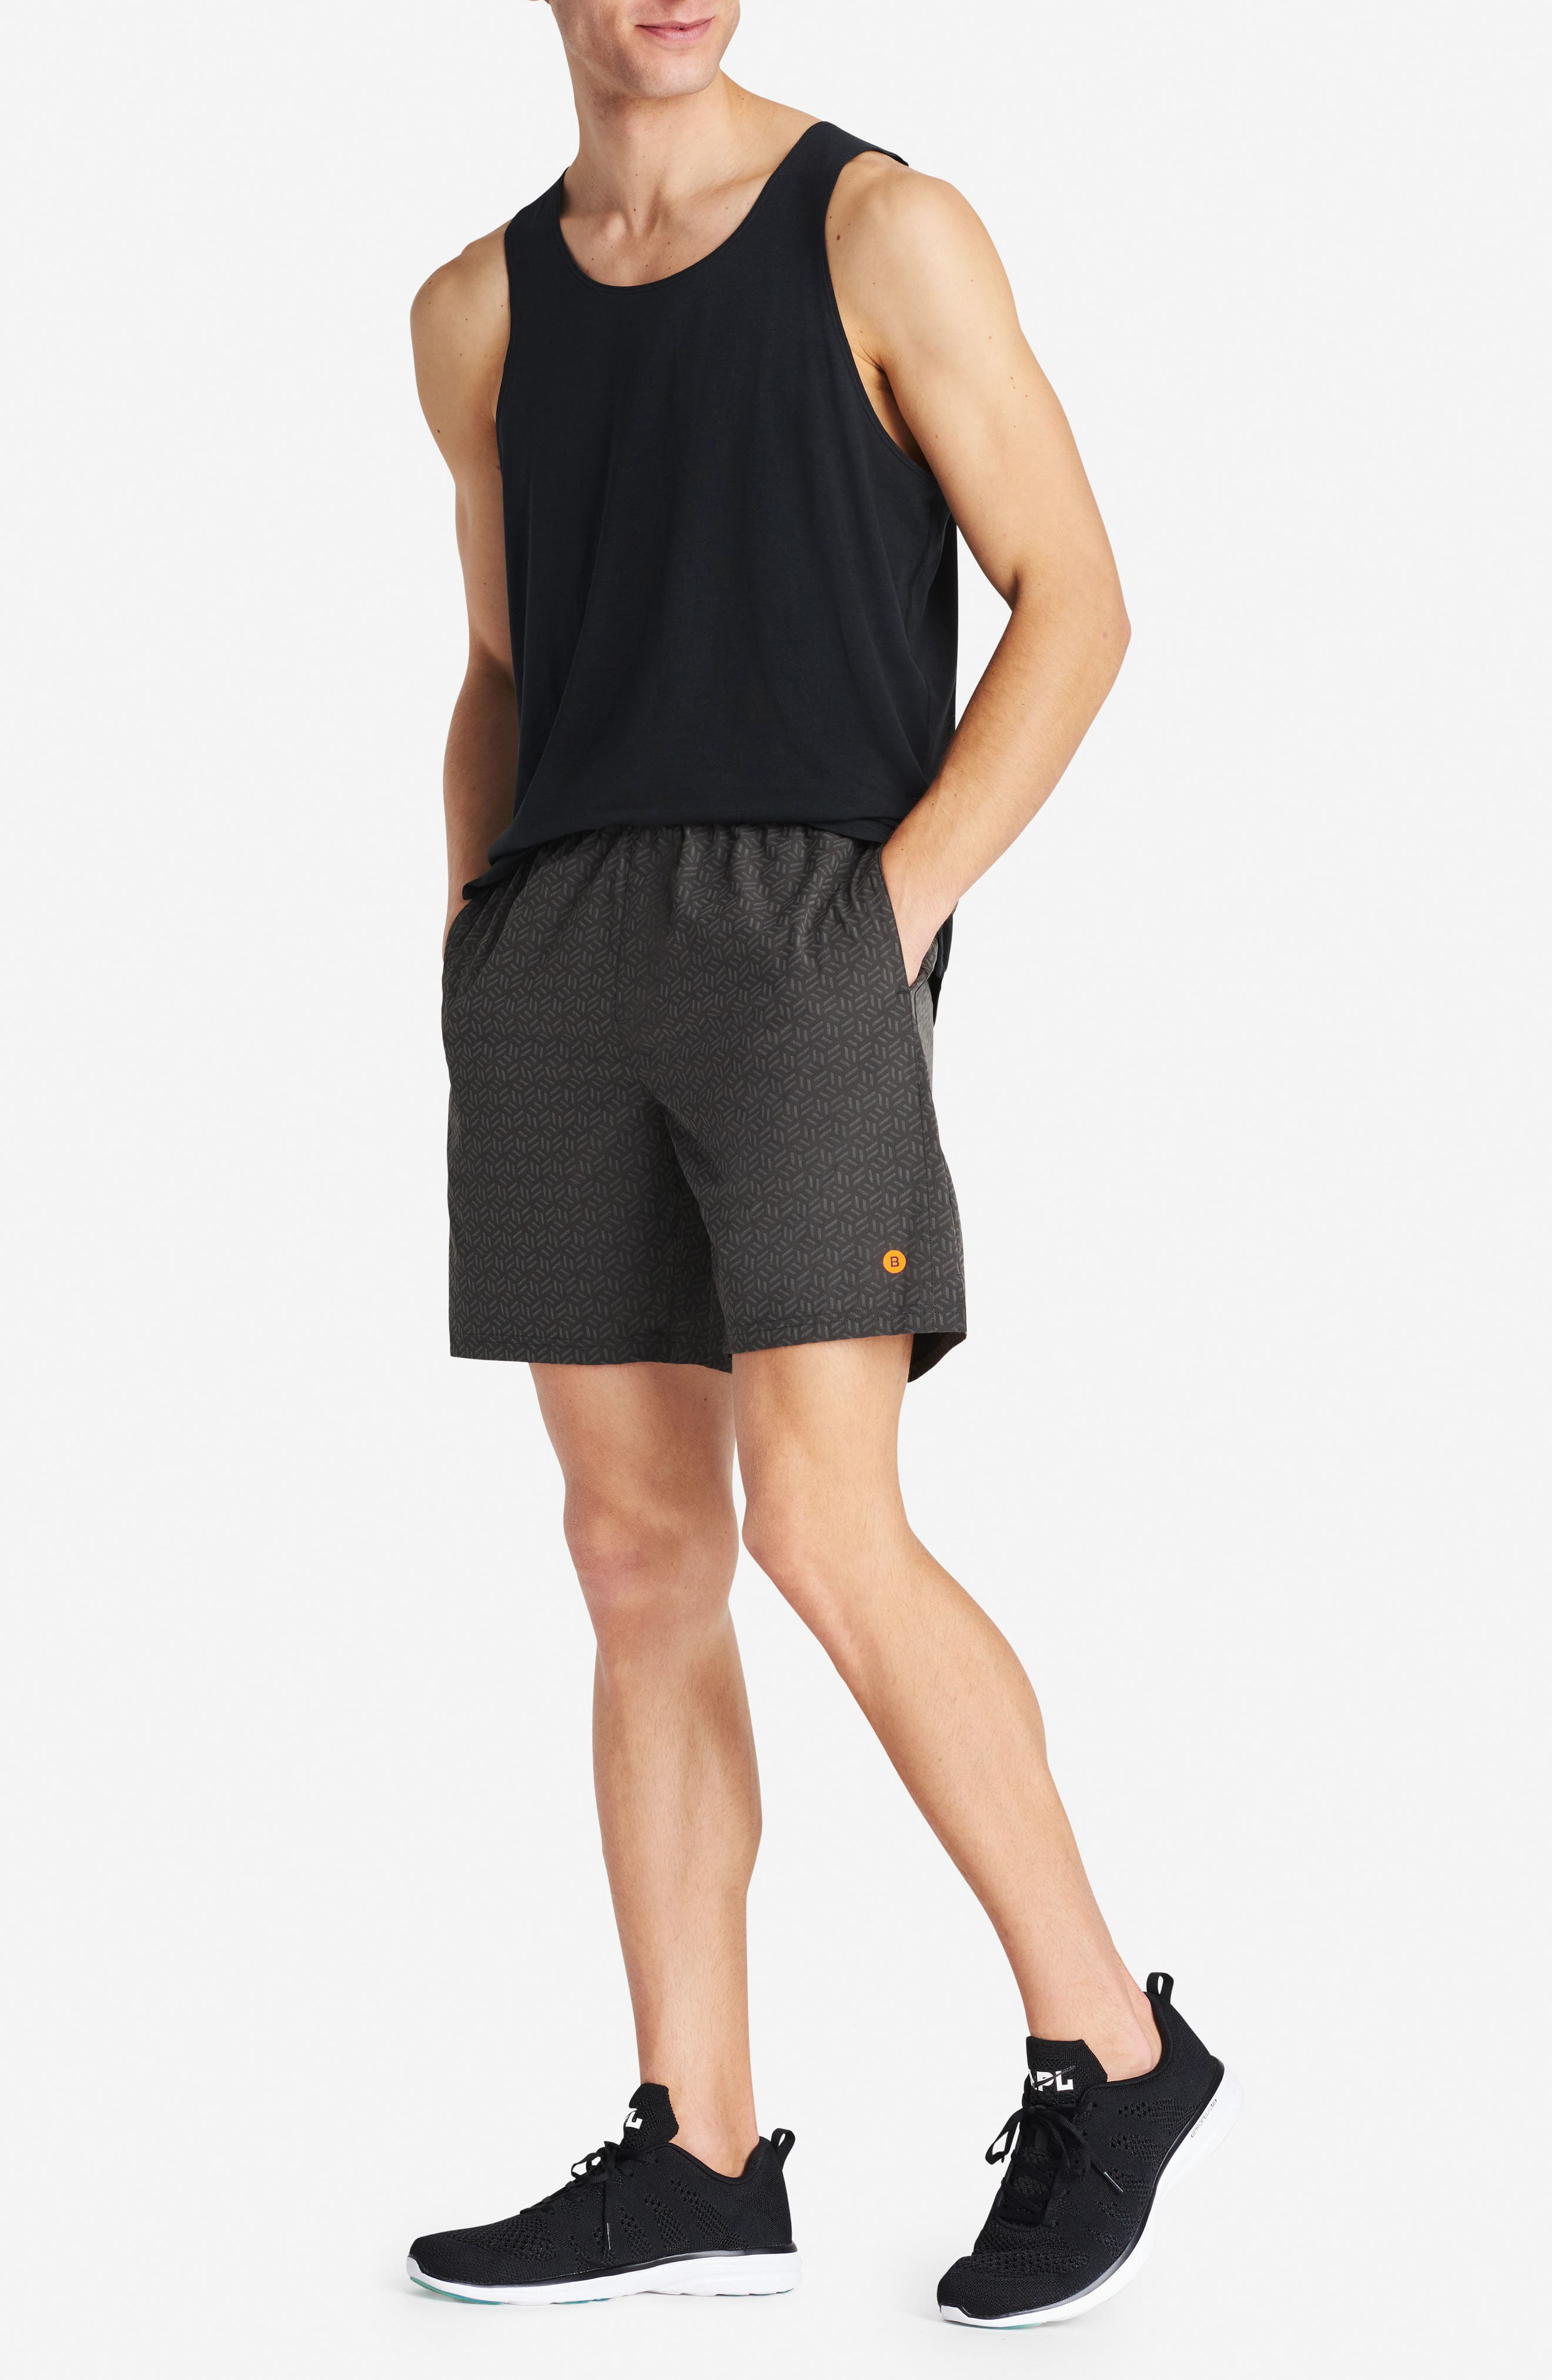 Stretch Shorts,                             Alternate thumbnail 8, color,                             REFLECTIVE CUBE GEO